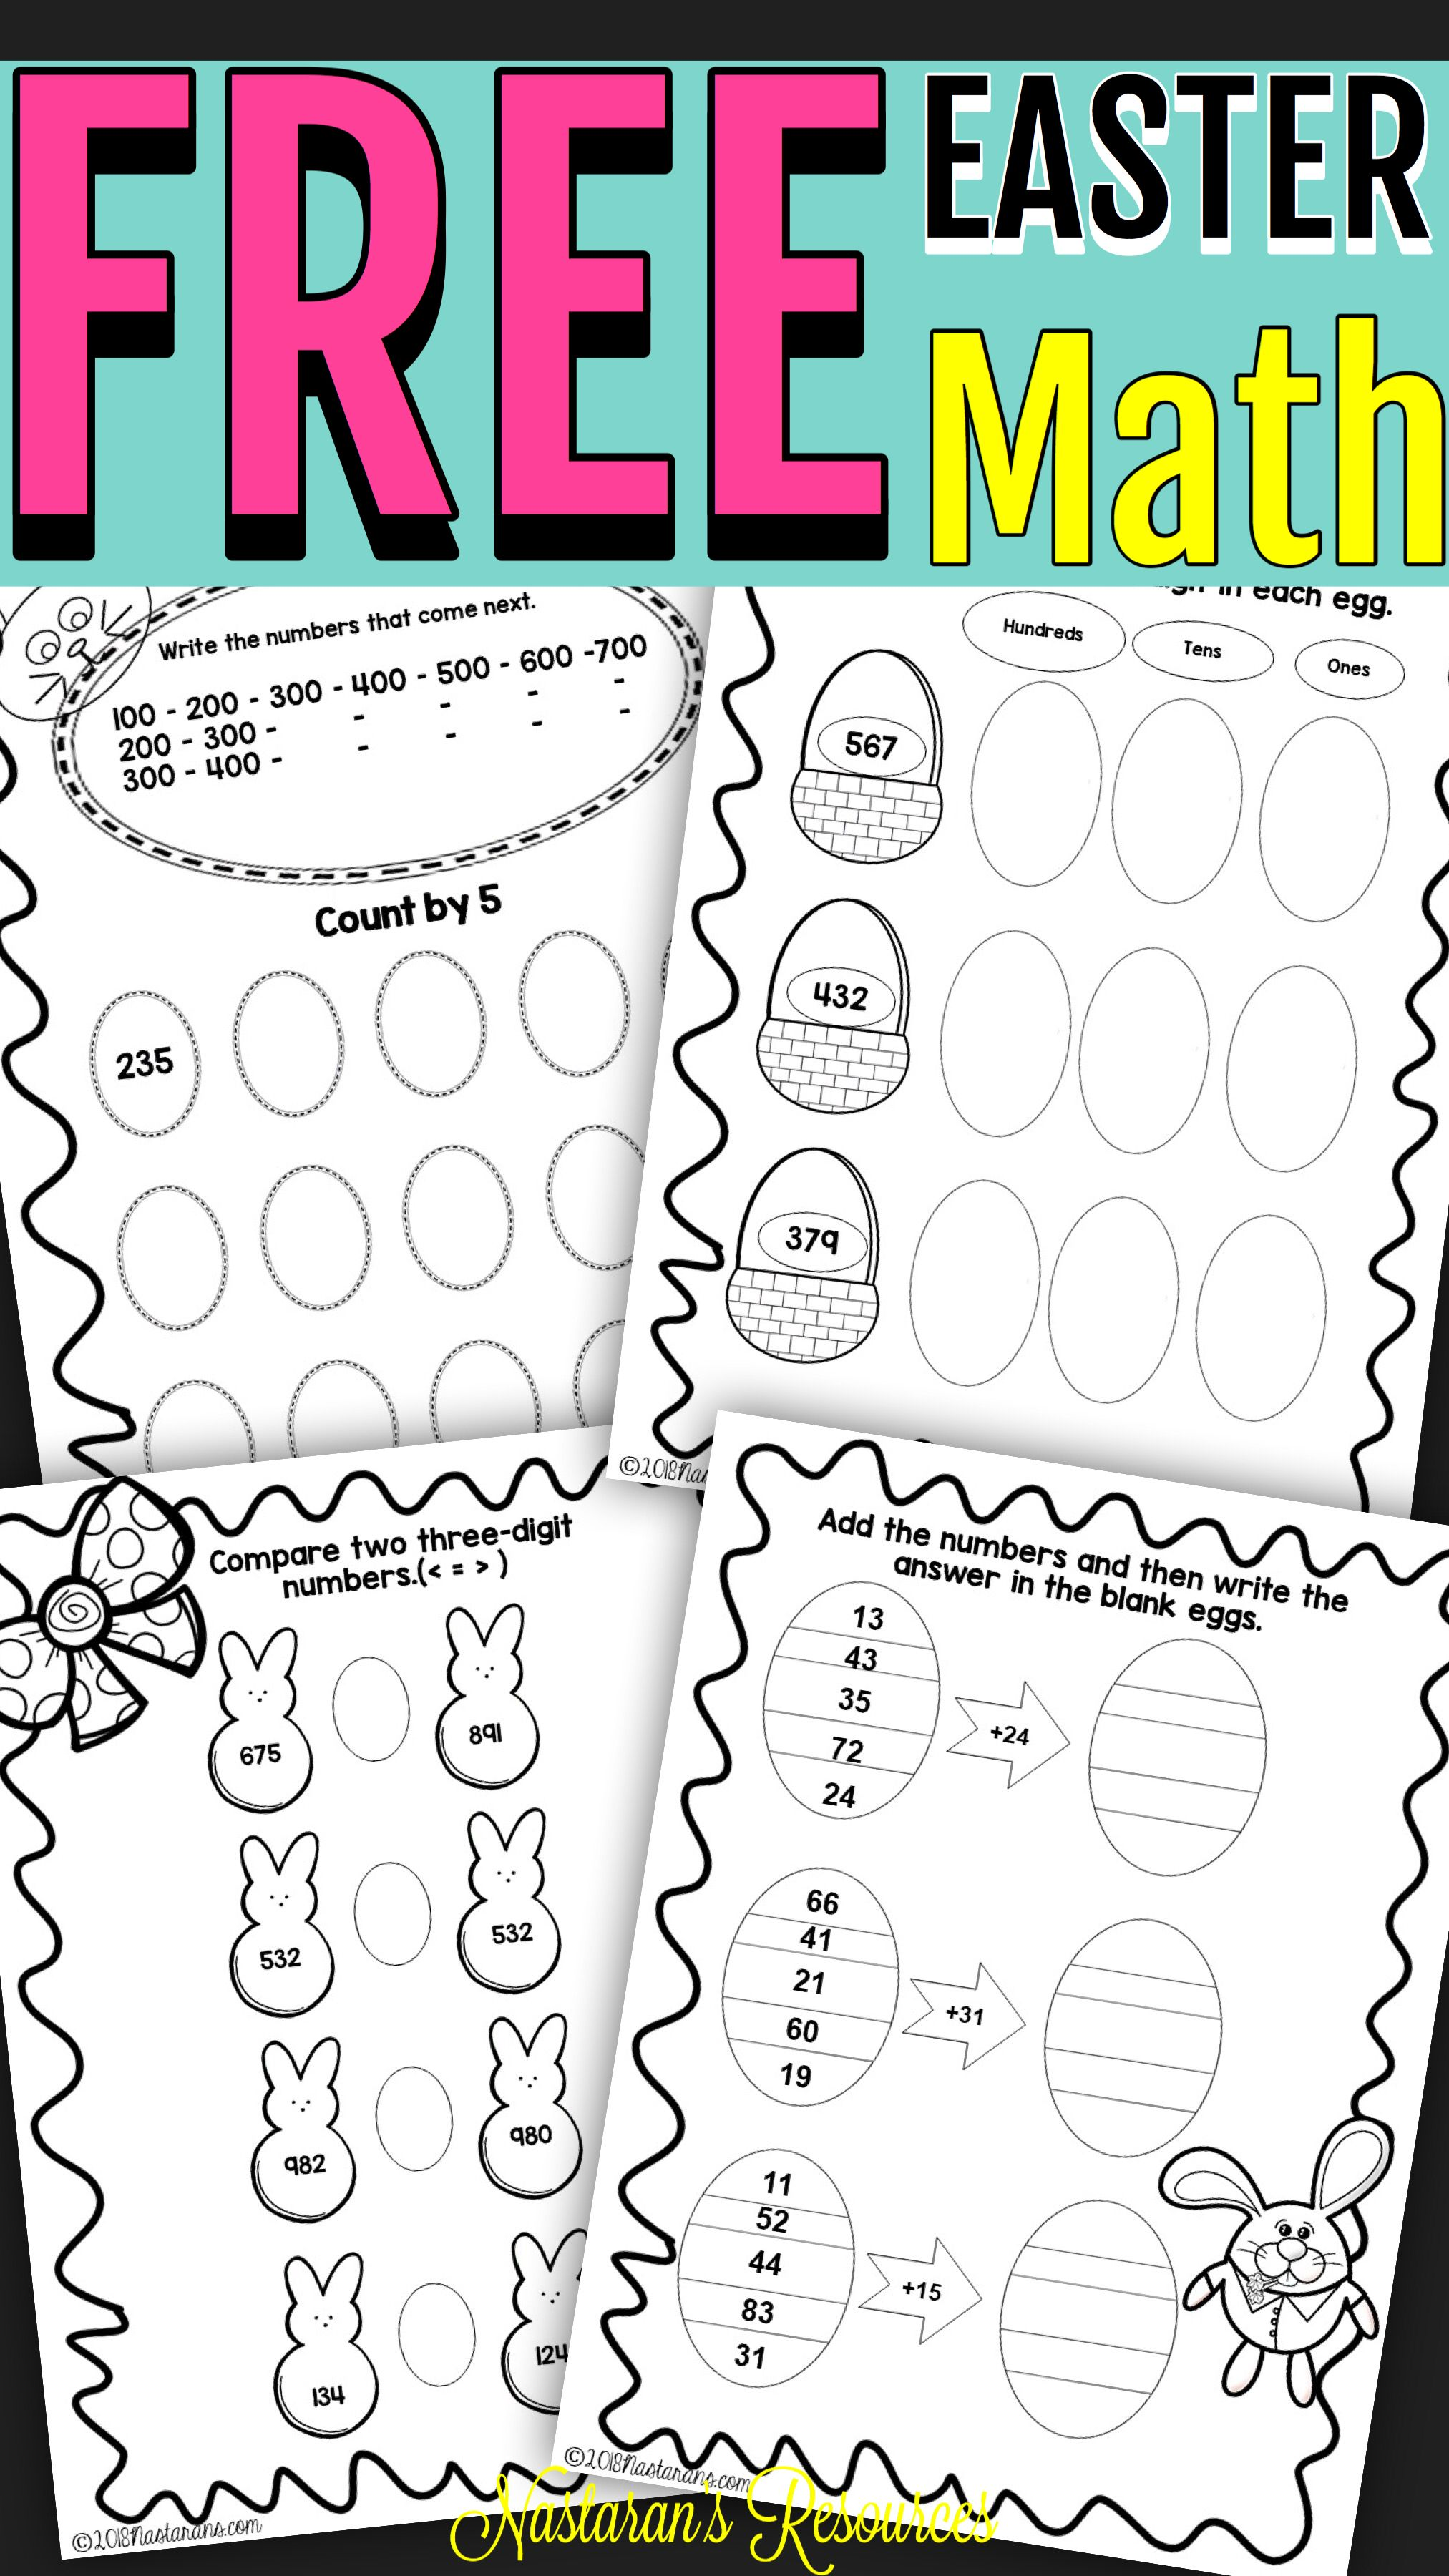 Free Easter Math Worksheets